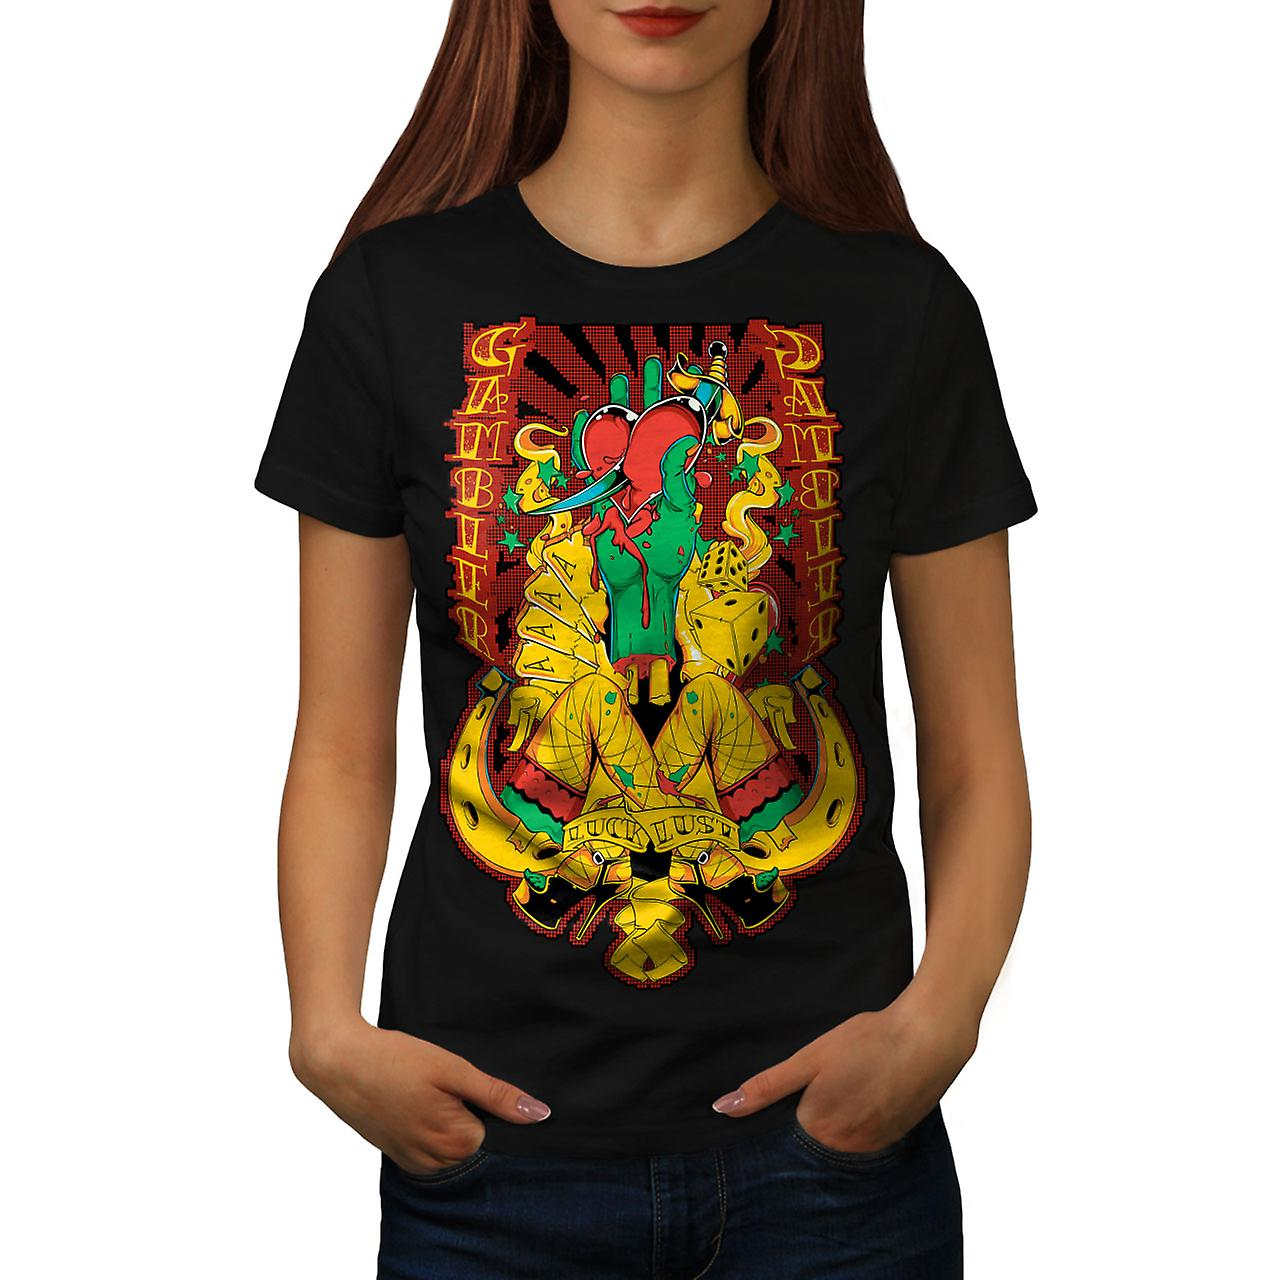 Gamble Heart Sexy Casino Women Black T-shirt | Wellcoda